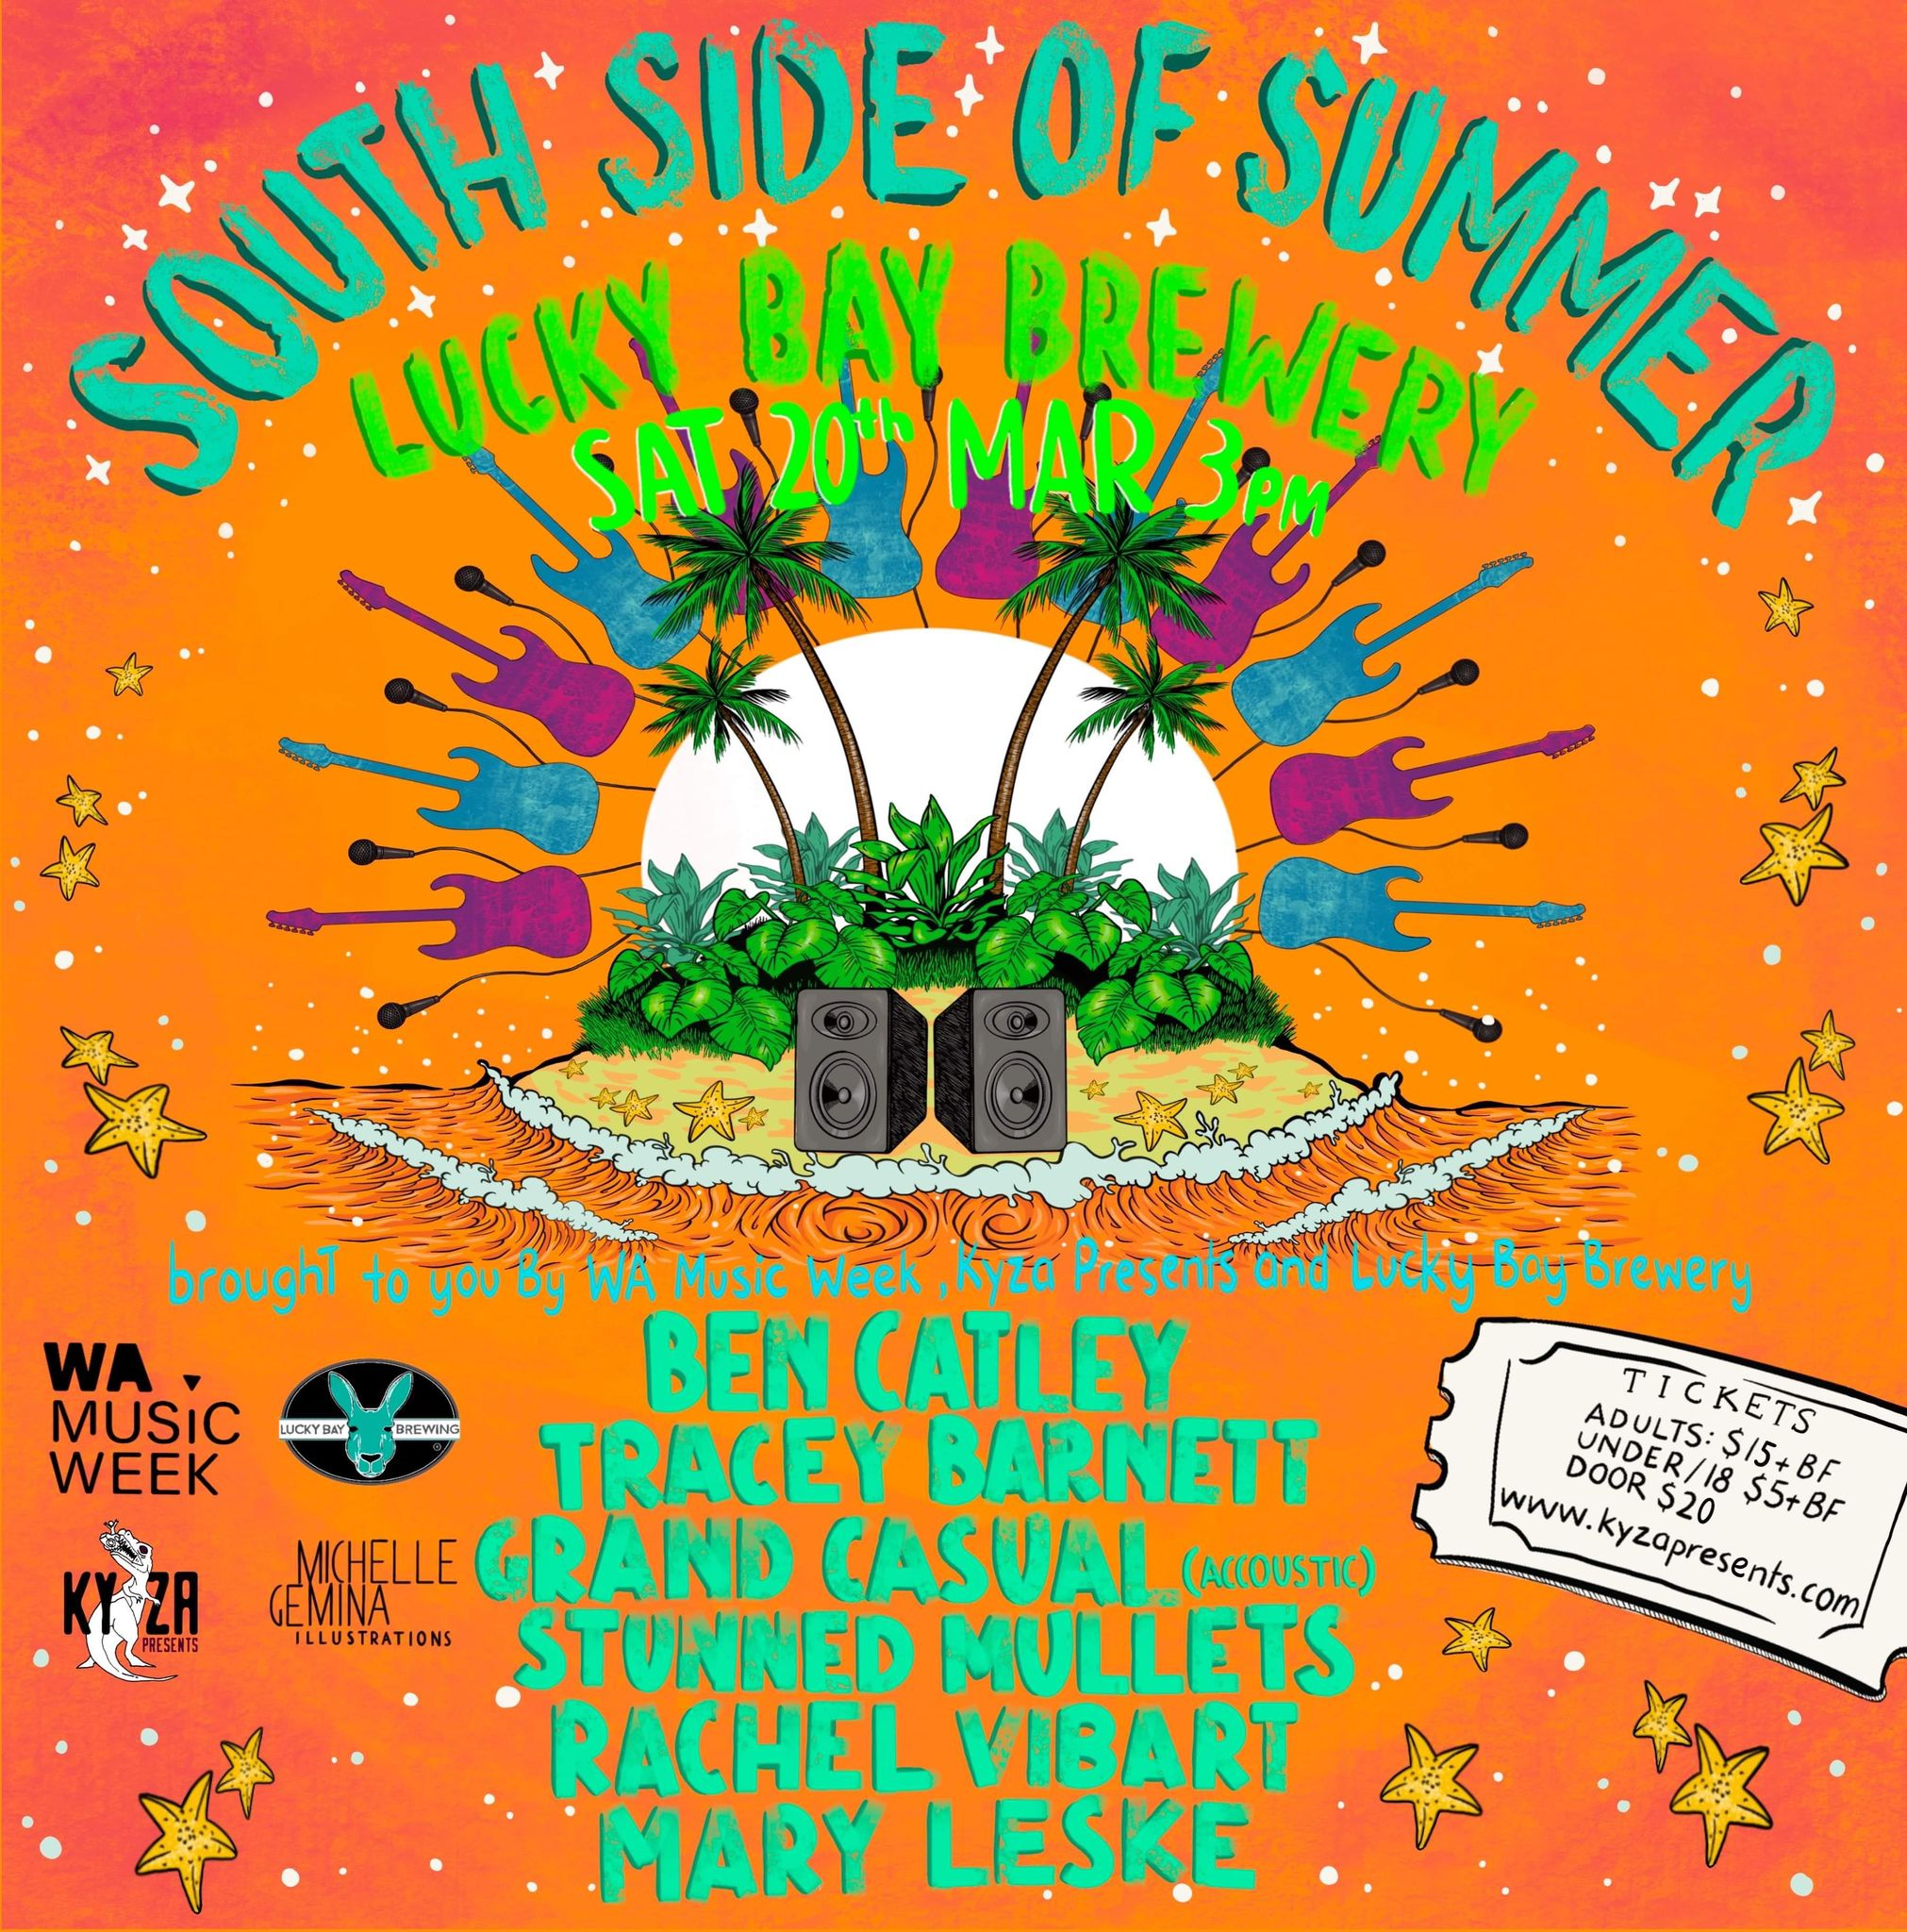 South Side of Summer Festival at Lucky Bay Brewing